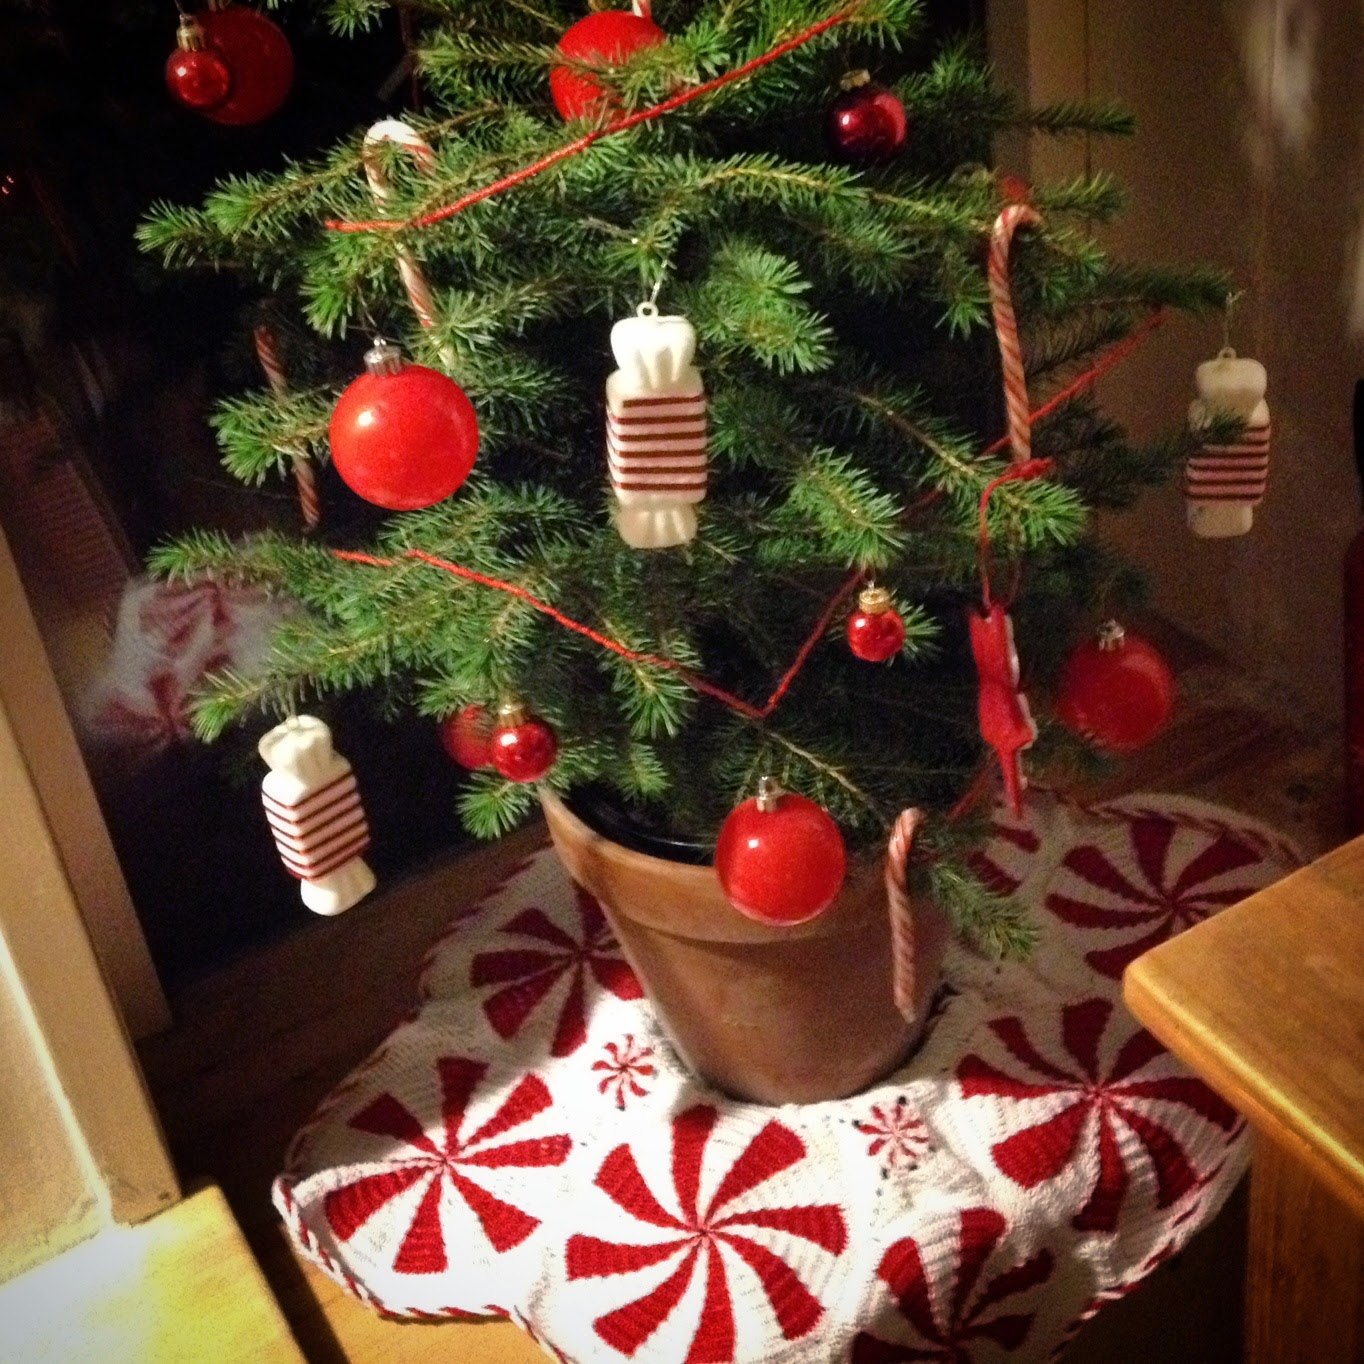 Crochet peppermint candy Christmas tree skirt tutorial and pattern